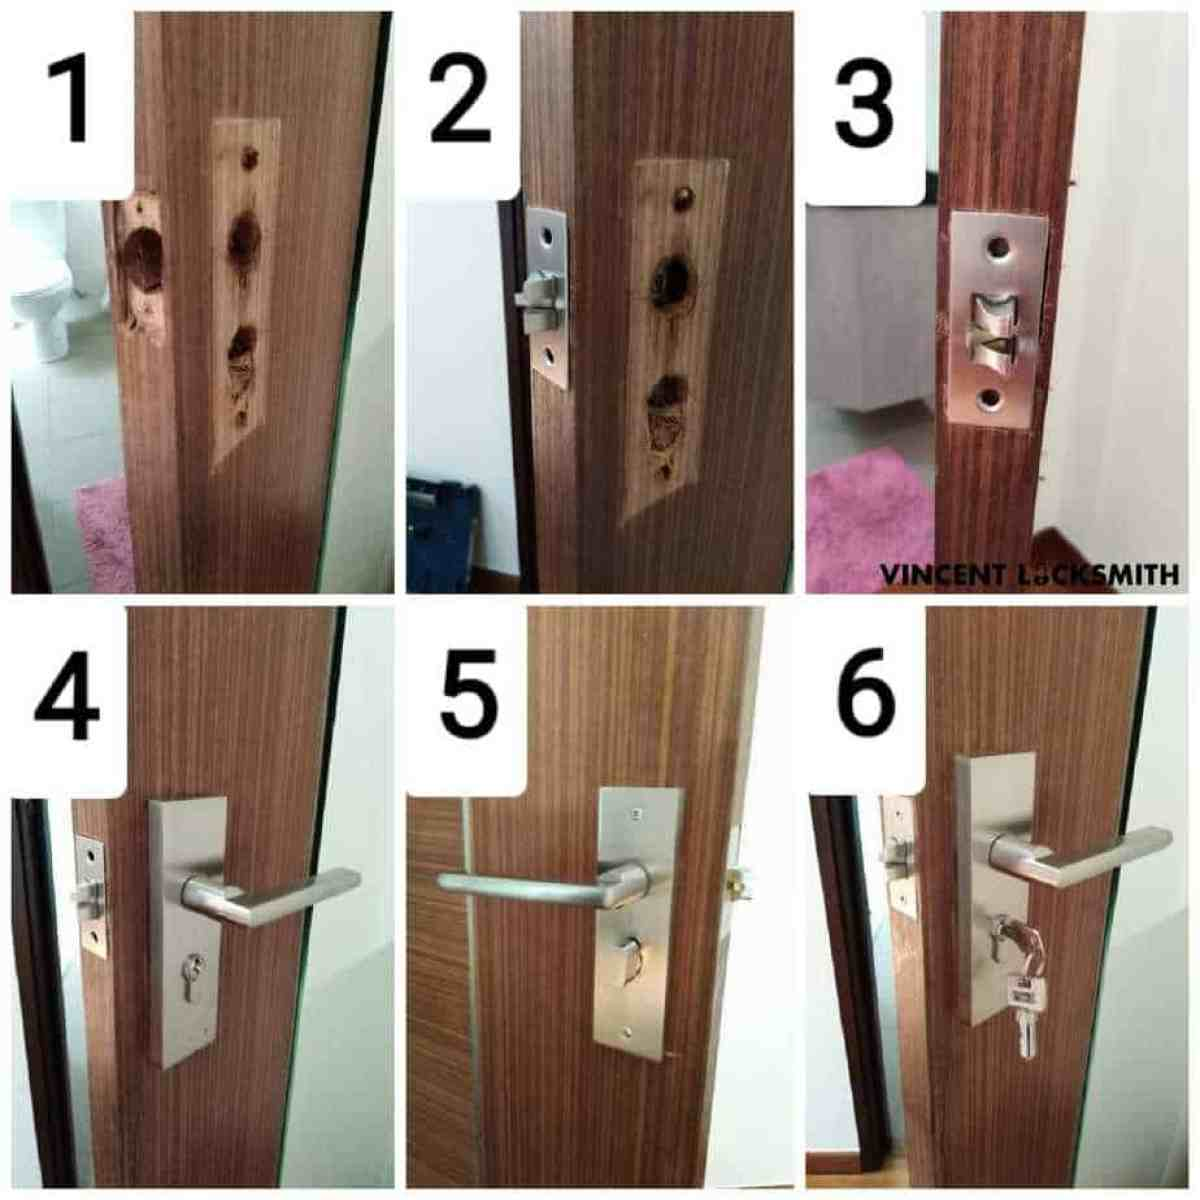 Replacement of toilet door lock